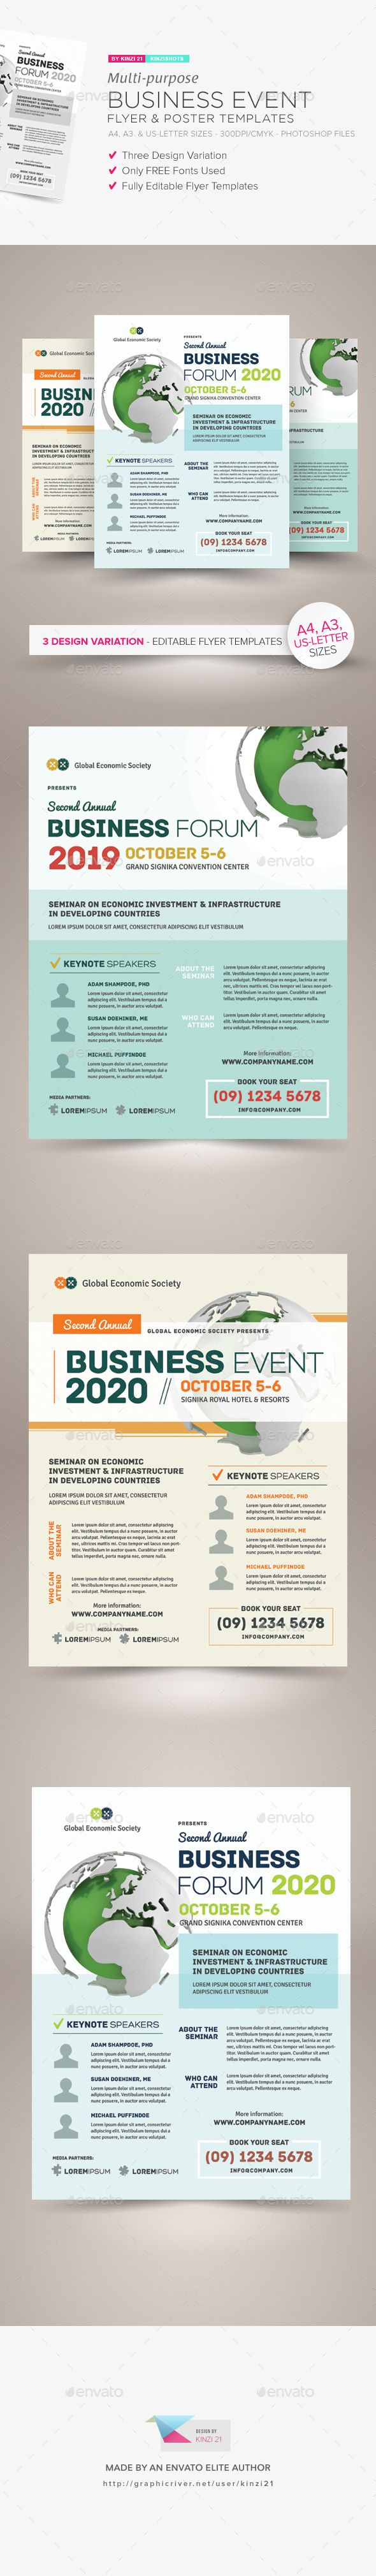 Multi-purpose #Business #Event Flyer & Poster Templates - Corporate Flyers